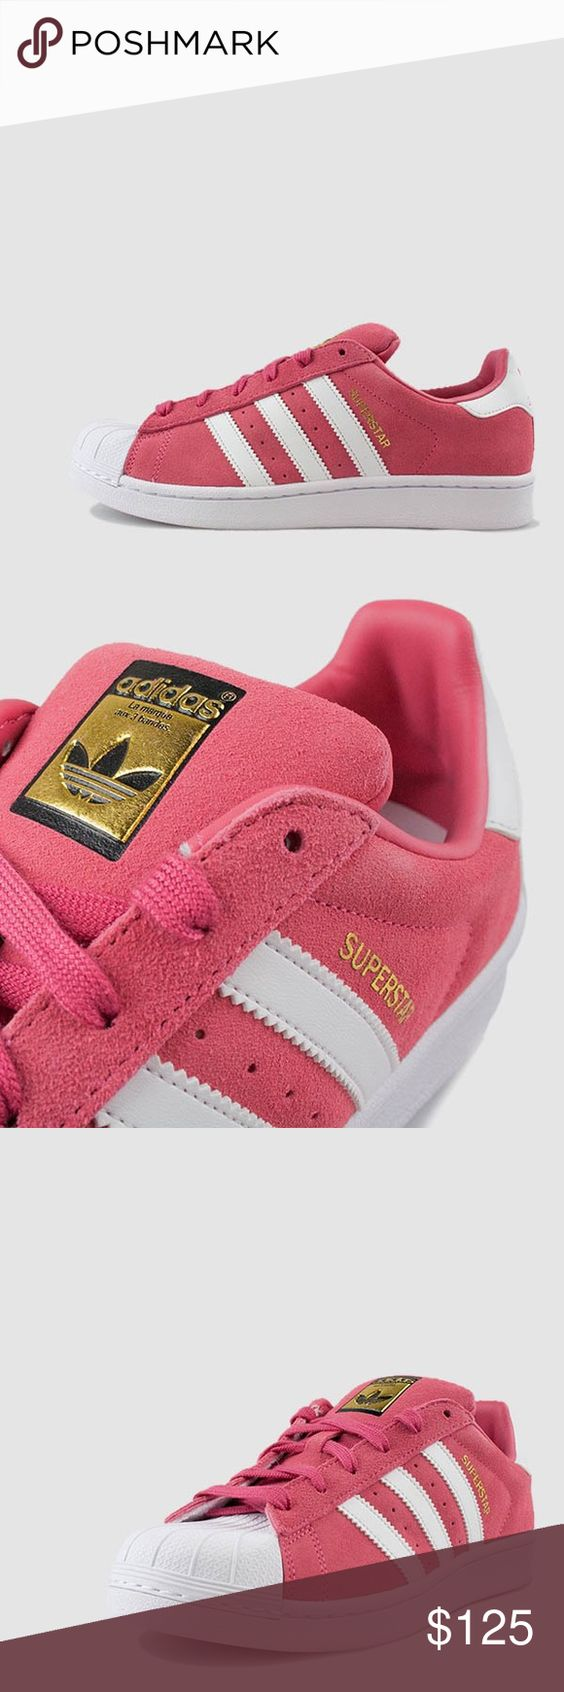 Adidas Superstar Limited Edition Pink